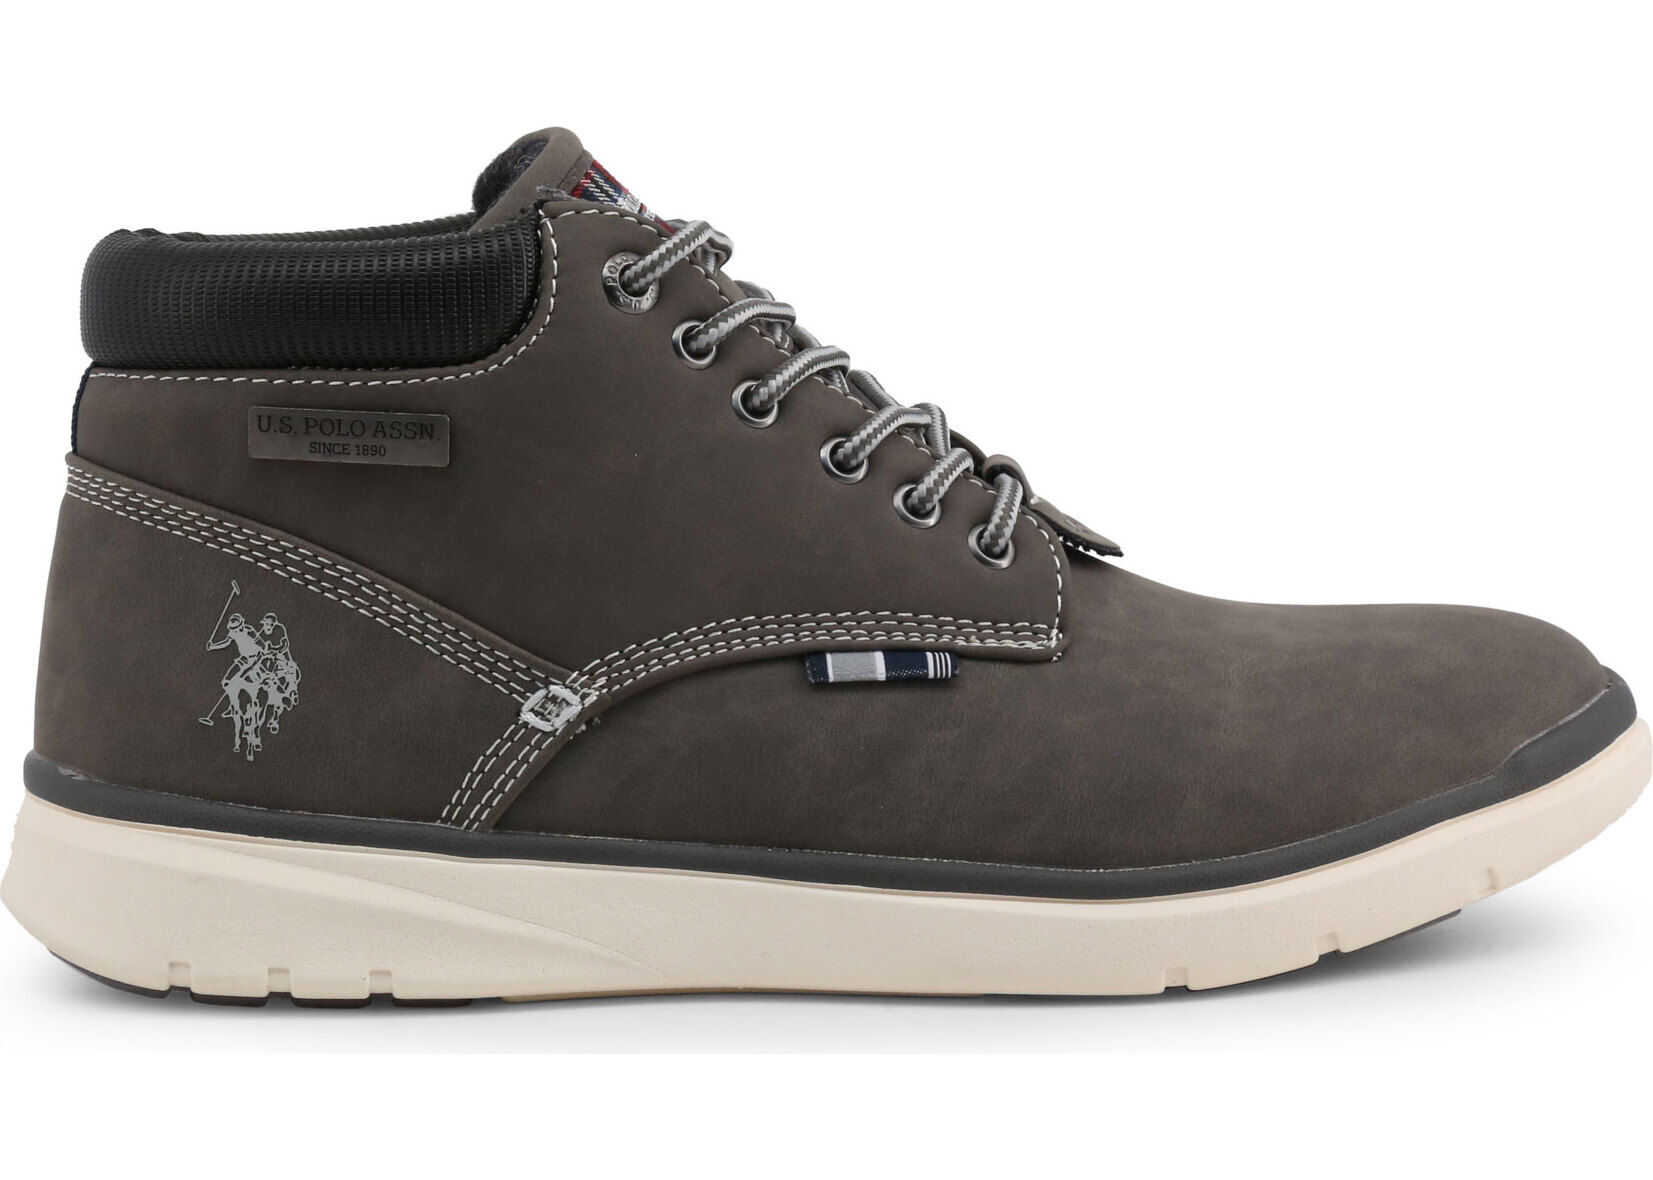 U.S. POLO ASSN. Ygor4081W8 Grey